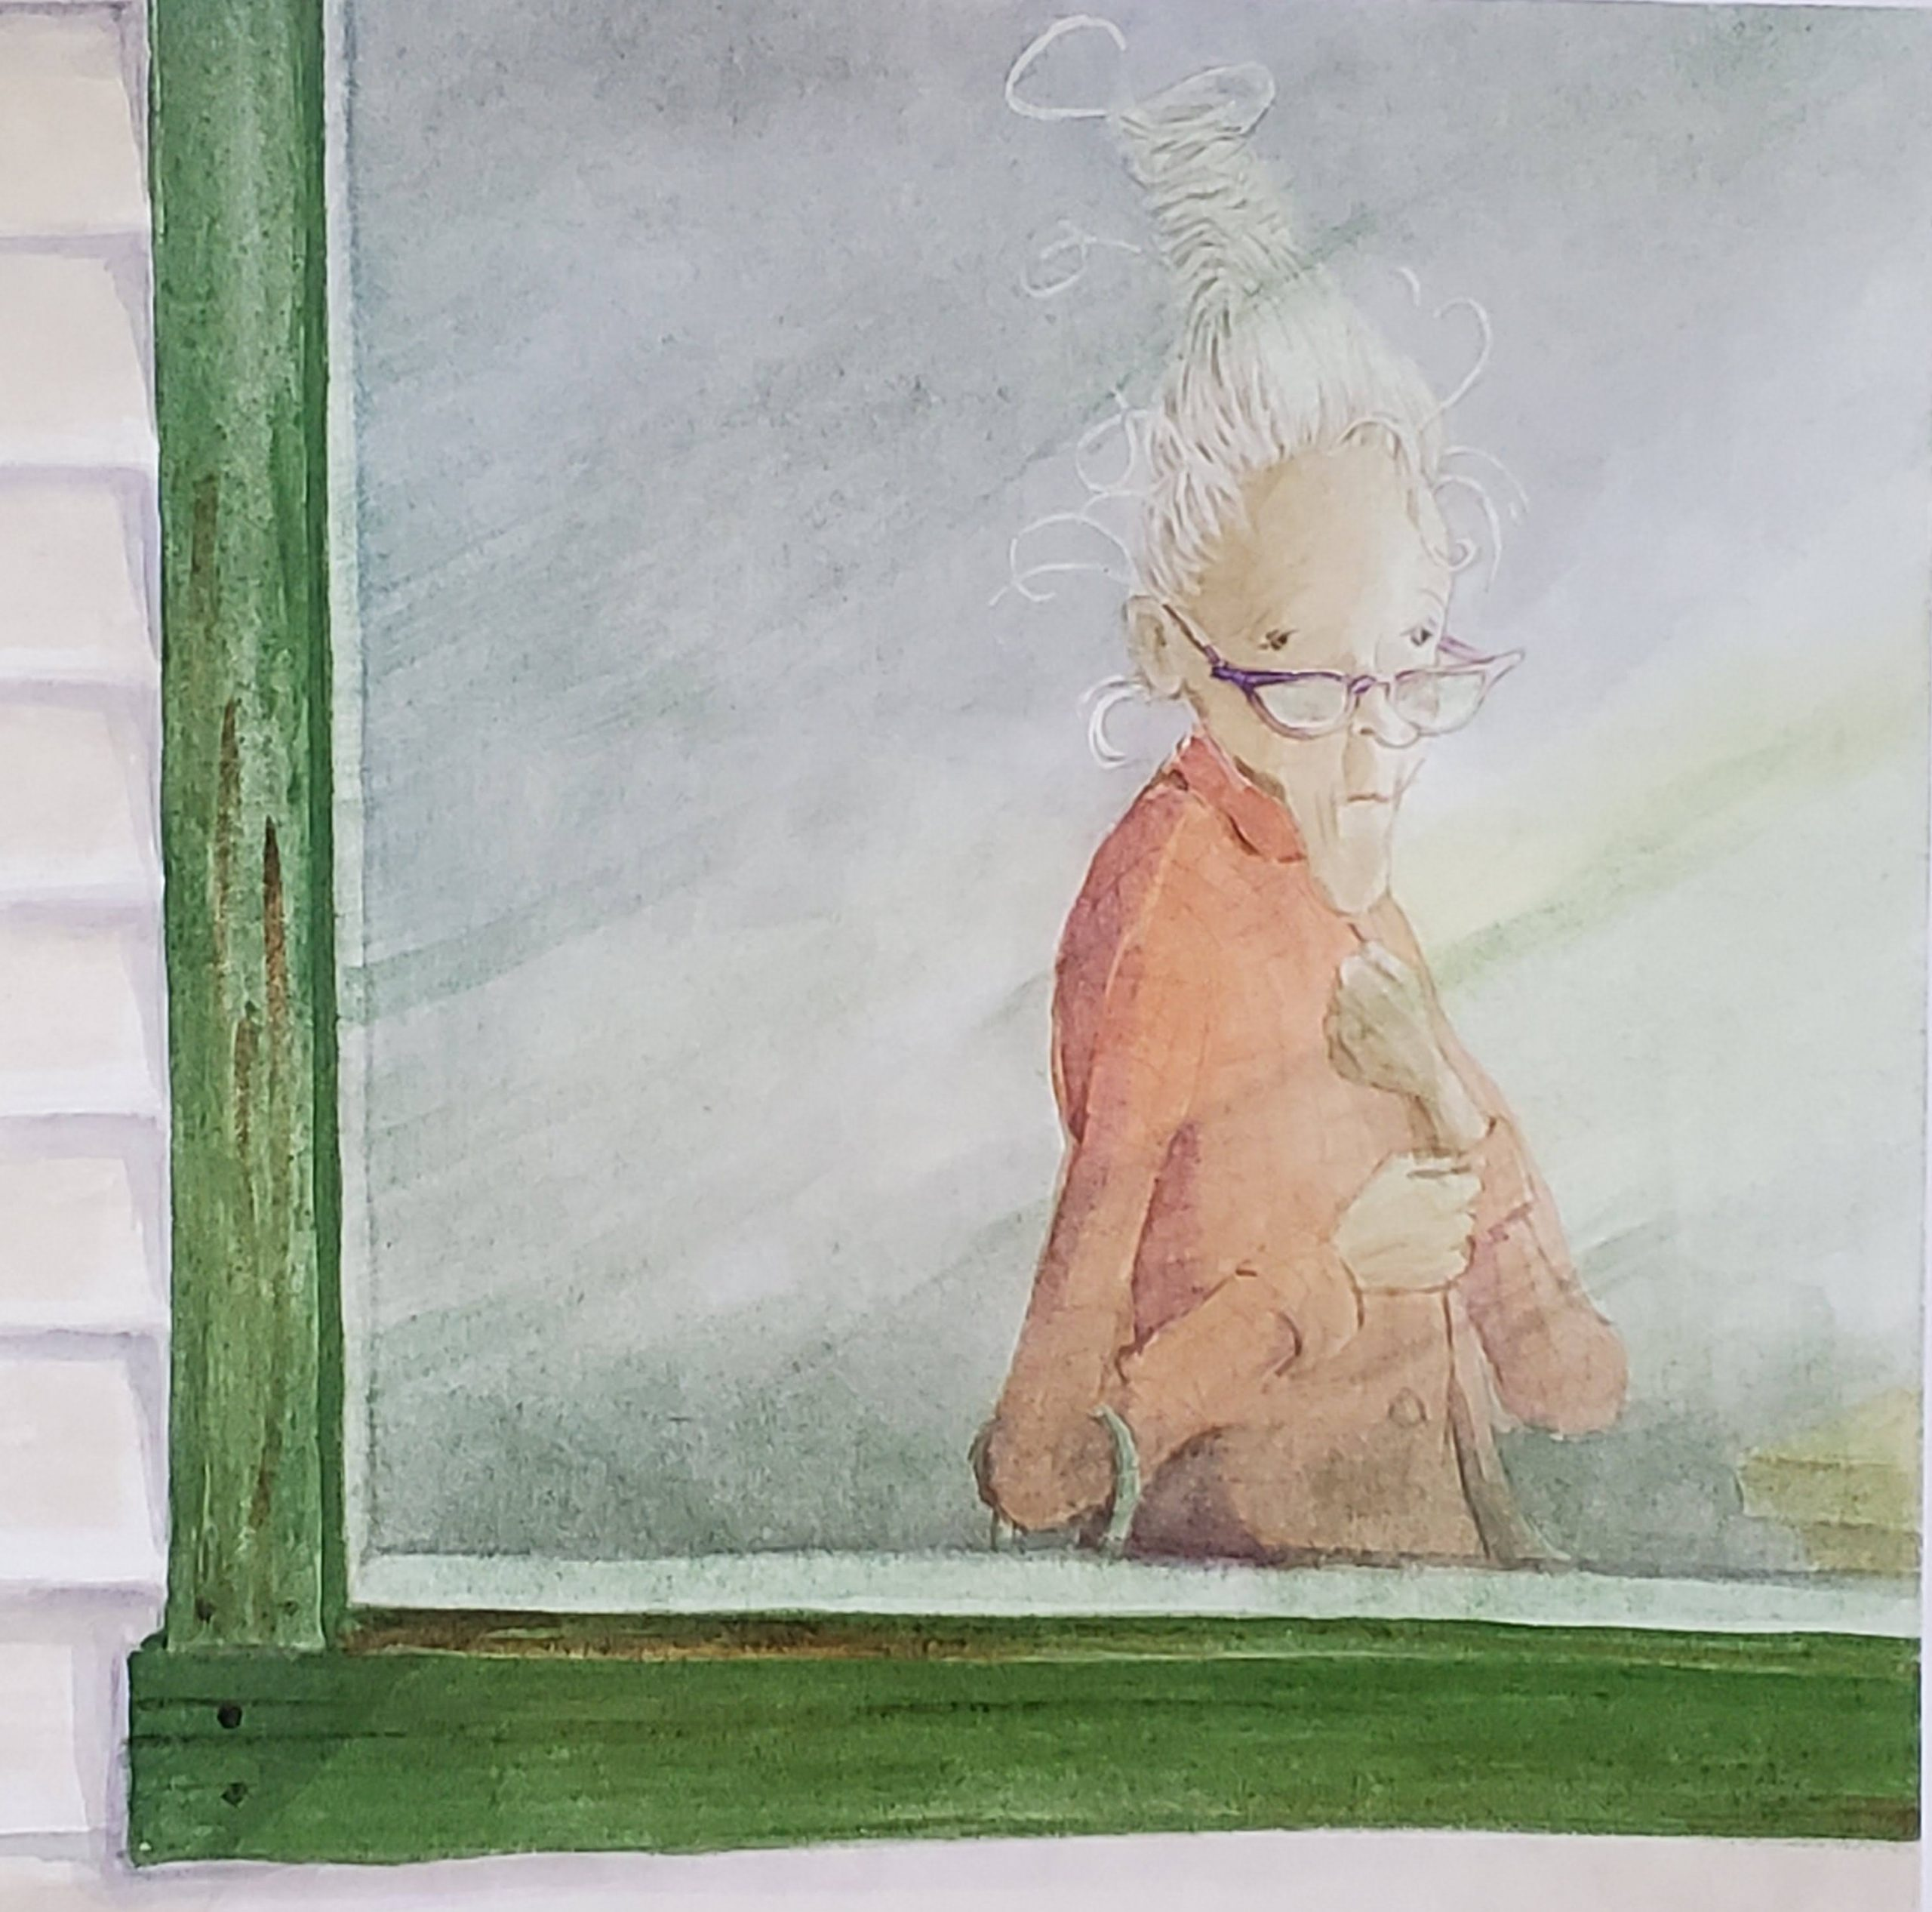 The beautiful children's book that tackles loneliness, fear, & the vulnerability it takes to find connection.